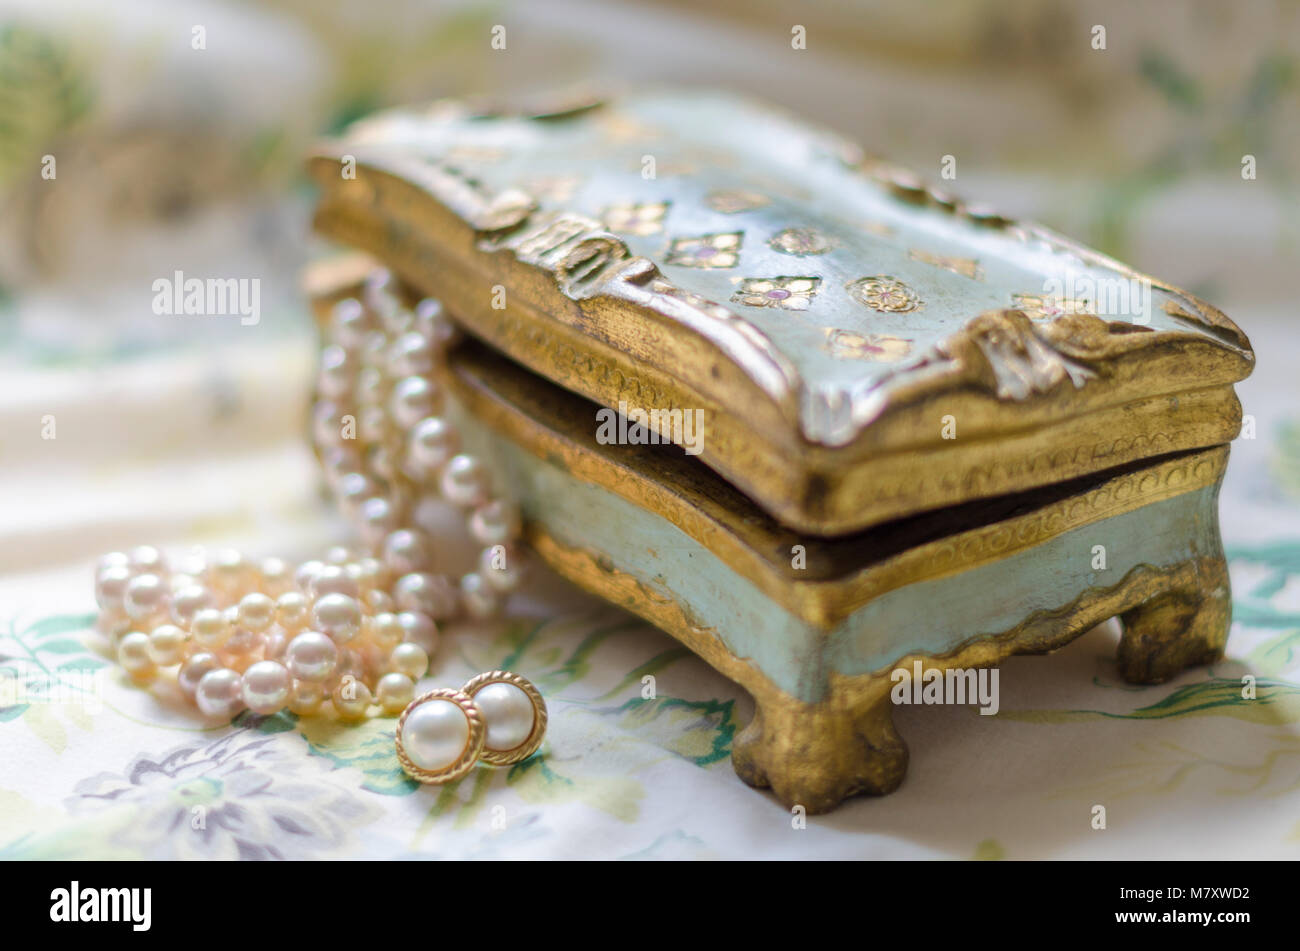 Italian Florentine jewelry box with pearls - Stock Image